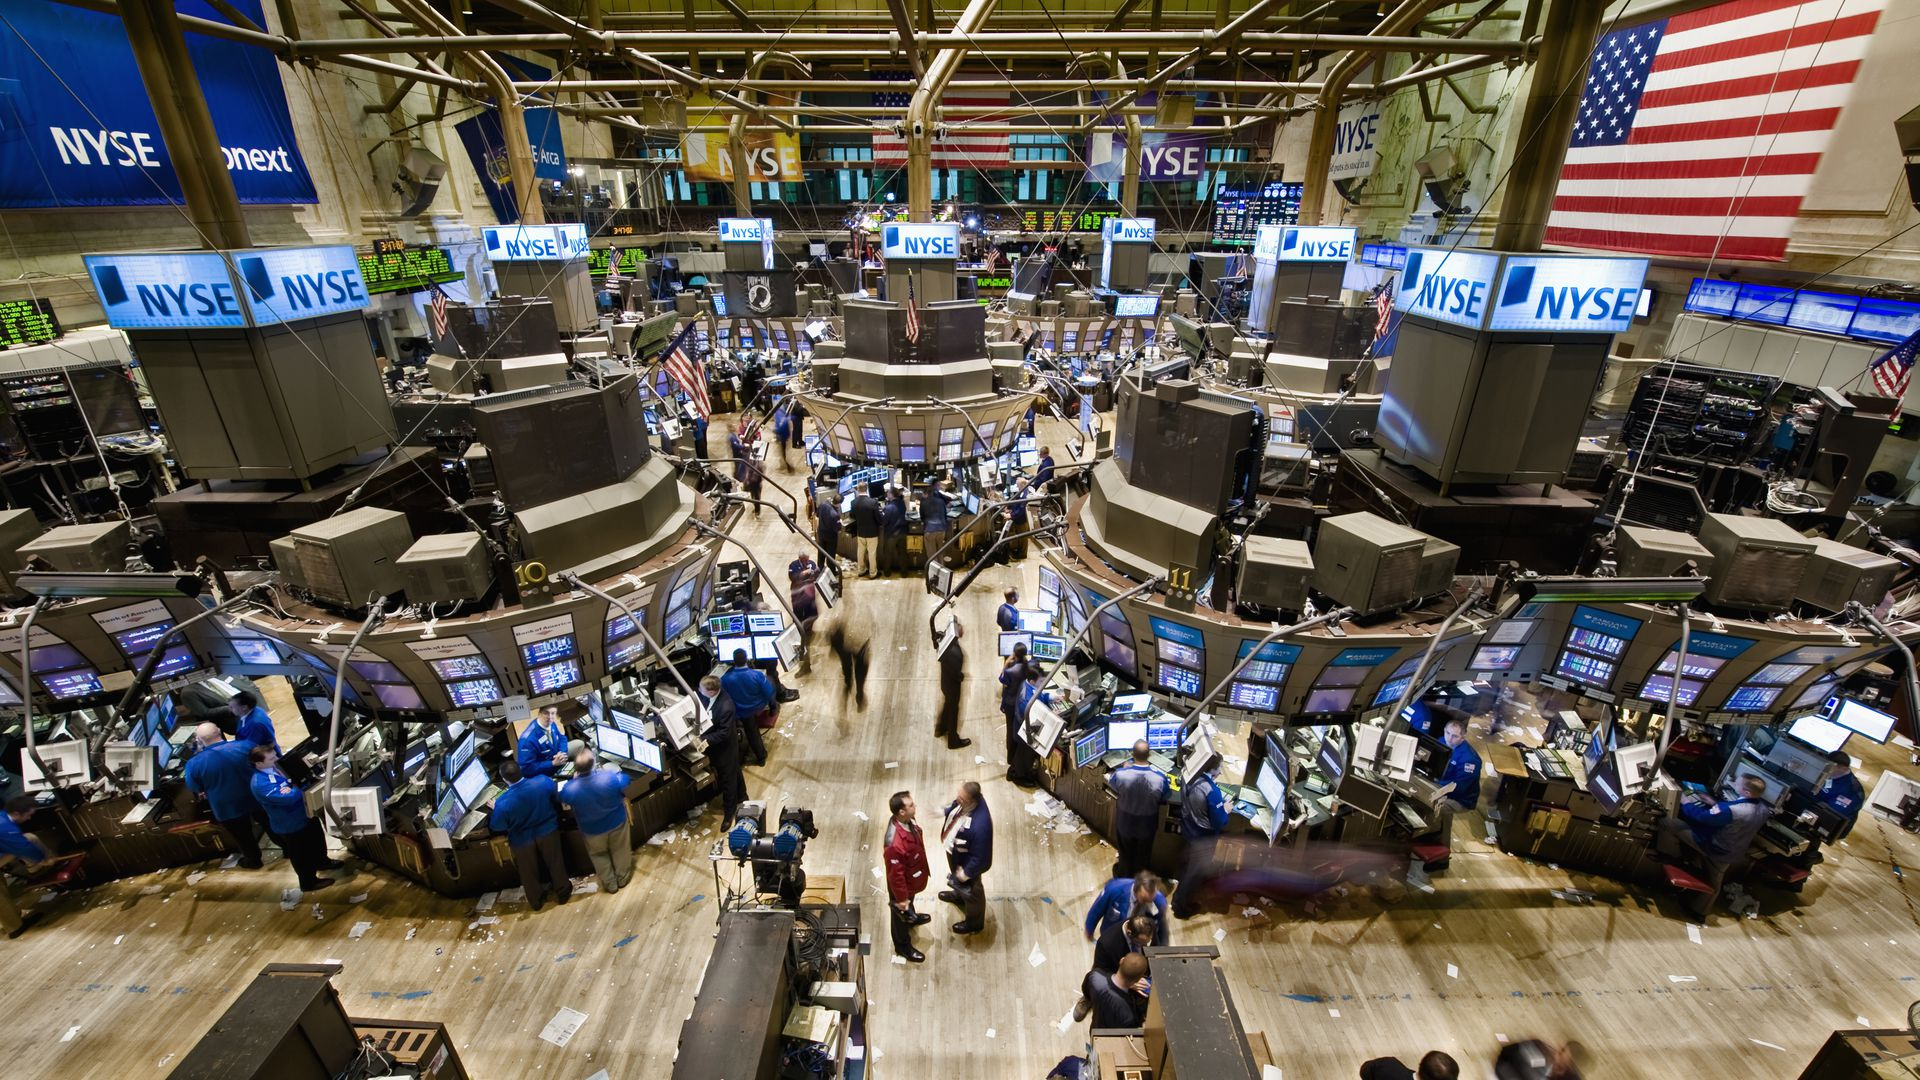 An aerial view of the New York Stock Exchange's trading floor.